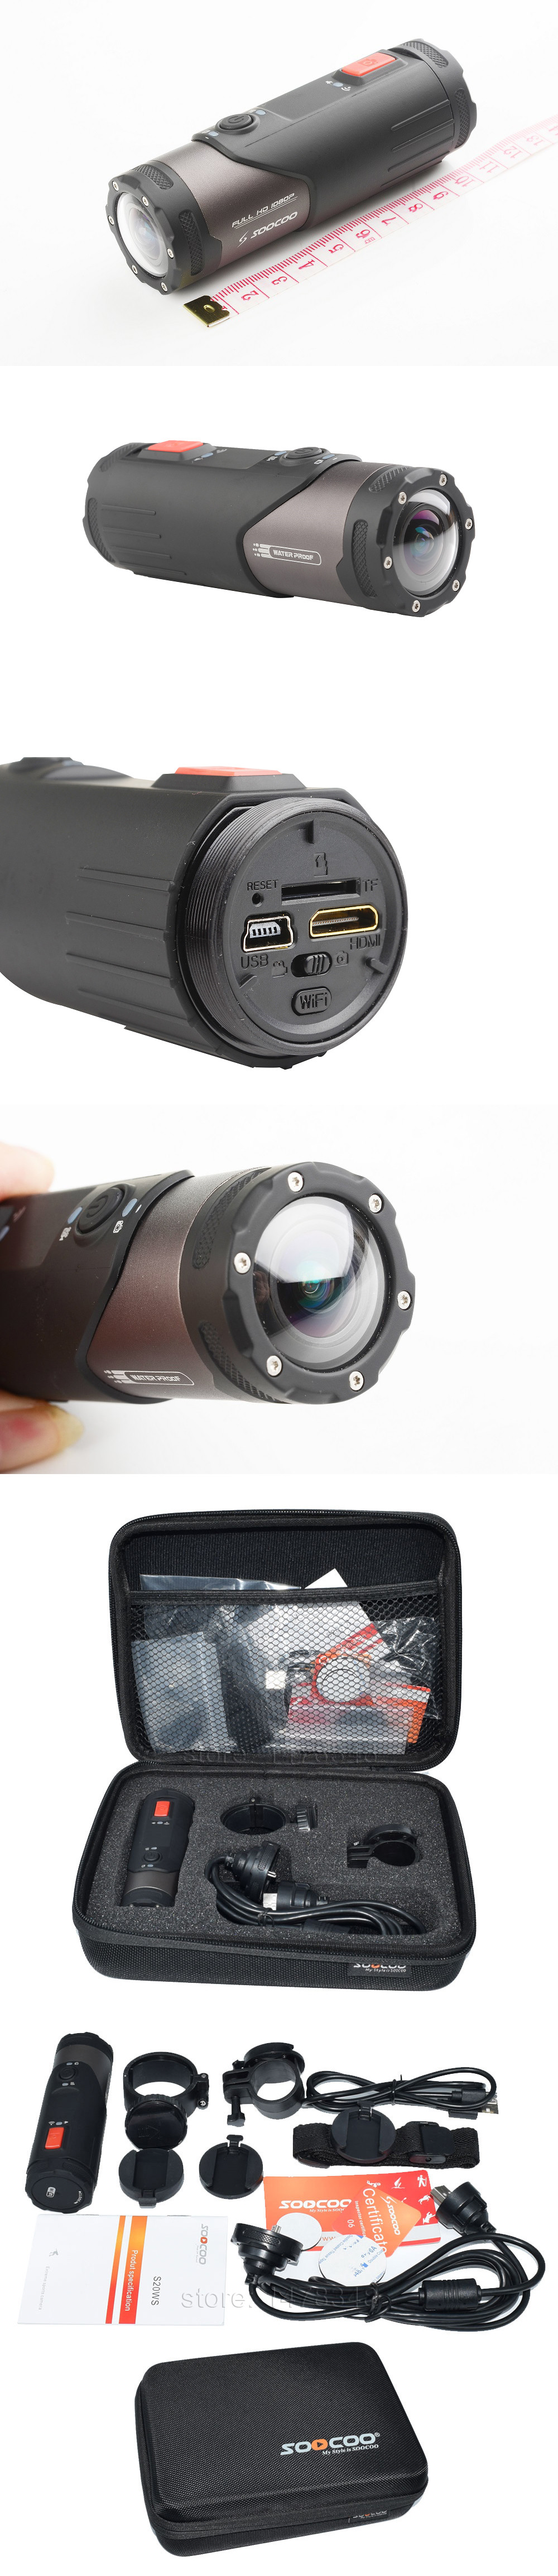 SOOCOO S20WS Mini Camera Built-In WiFi Full HD 1080P 10M Wateproof ...